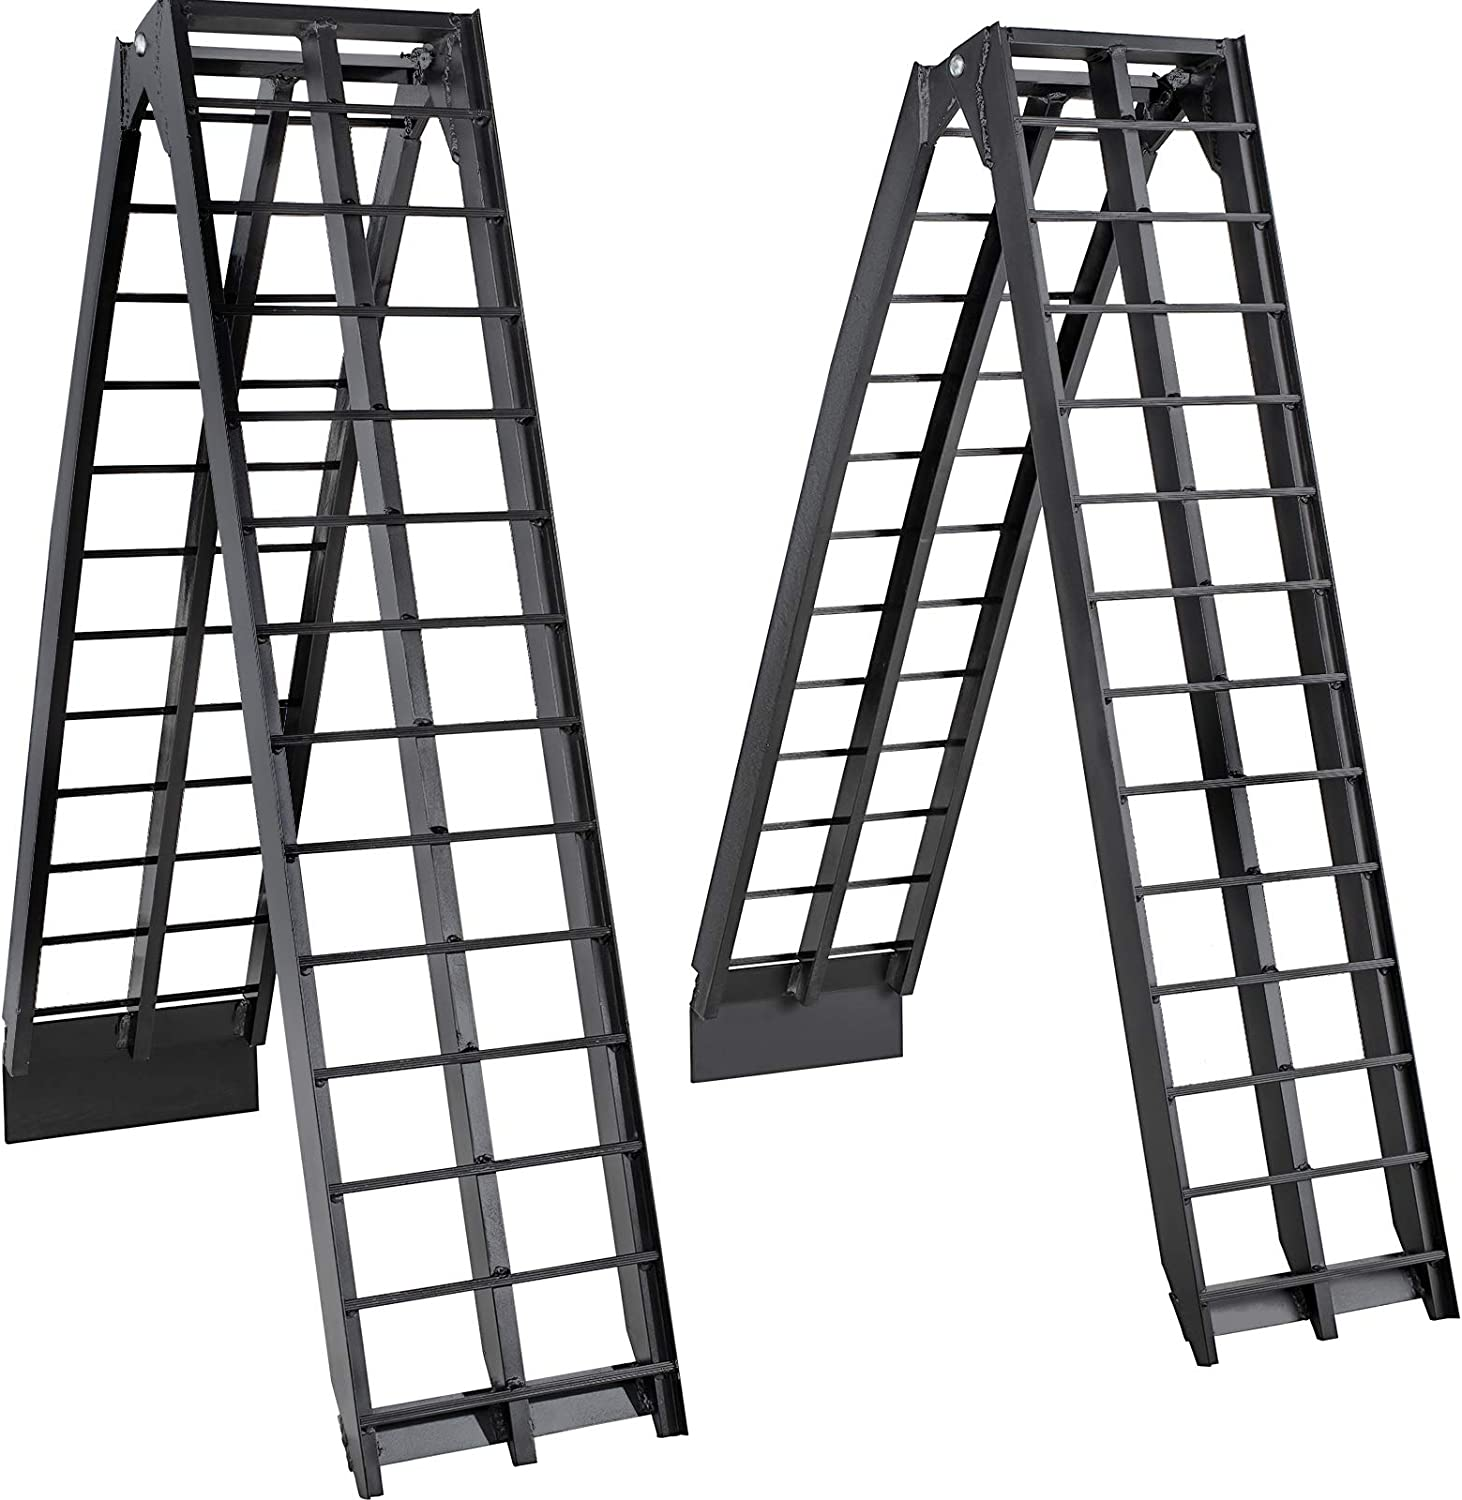 BestEquip Aluminum Now free shipping Ramps Quality inspection 8FT x 17.25 Inch Capa ATV 2000LBS